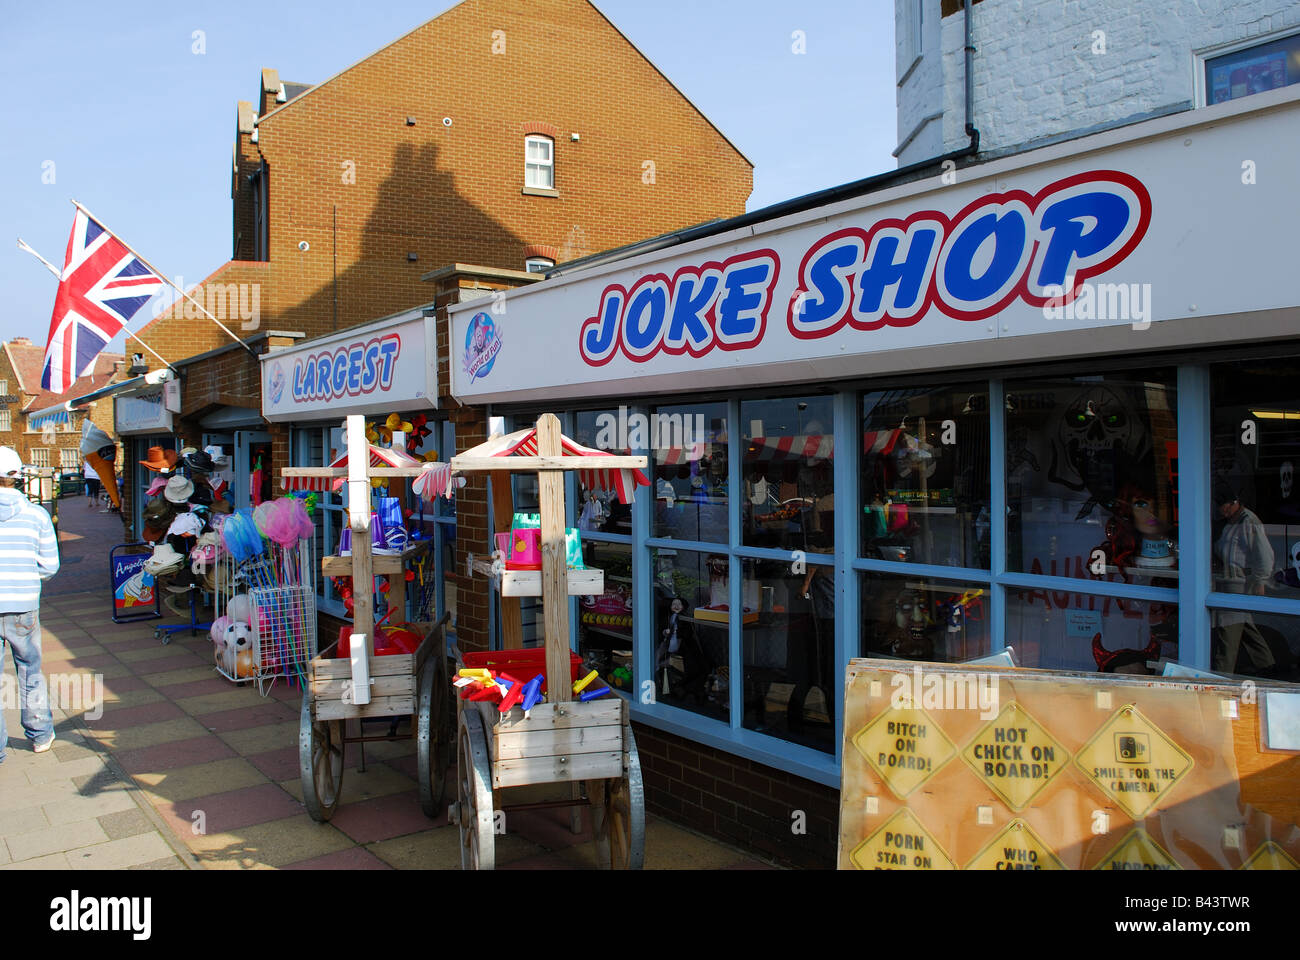 The Online Joke Shop Joke Shop Hunstanton Stock Photo Royalty Free Image